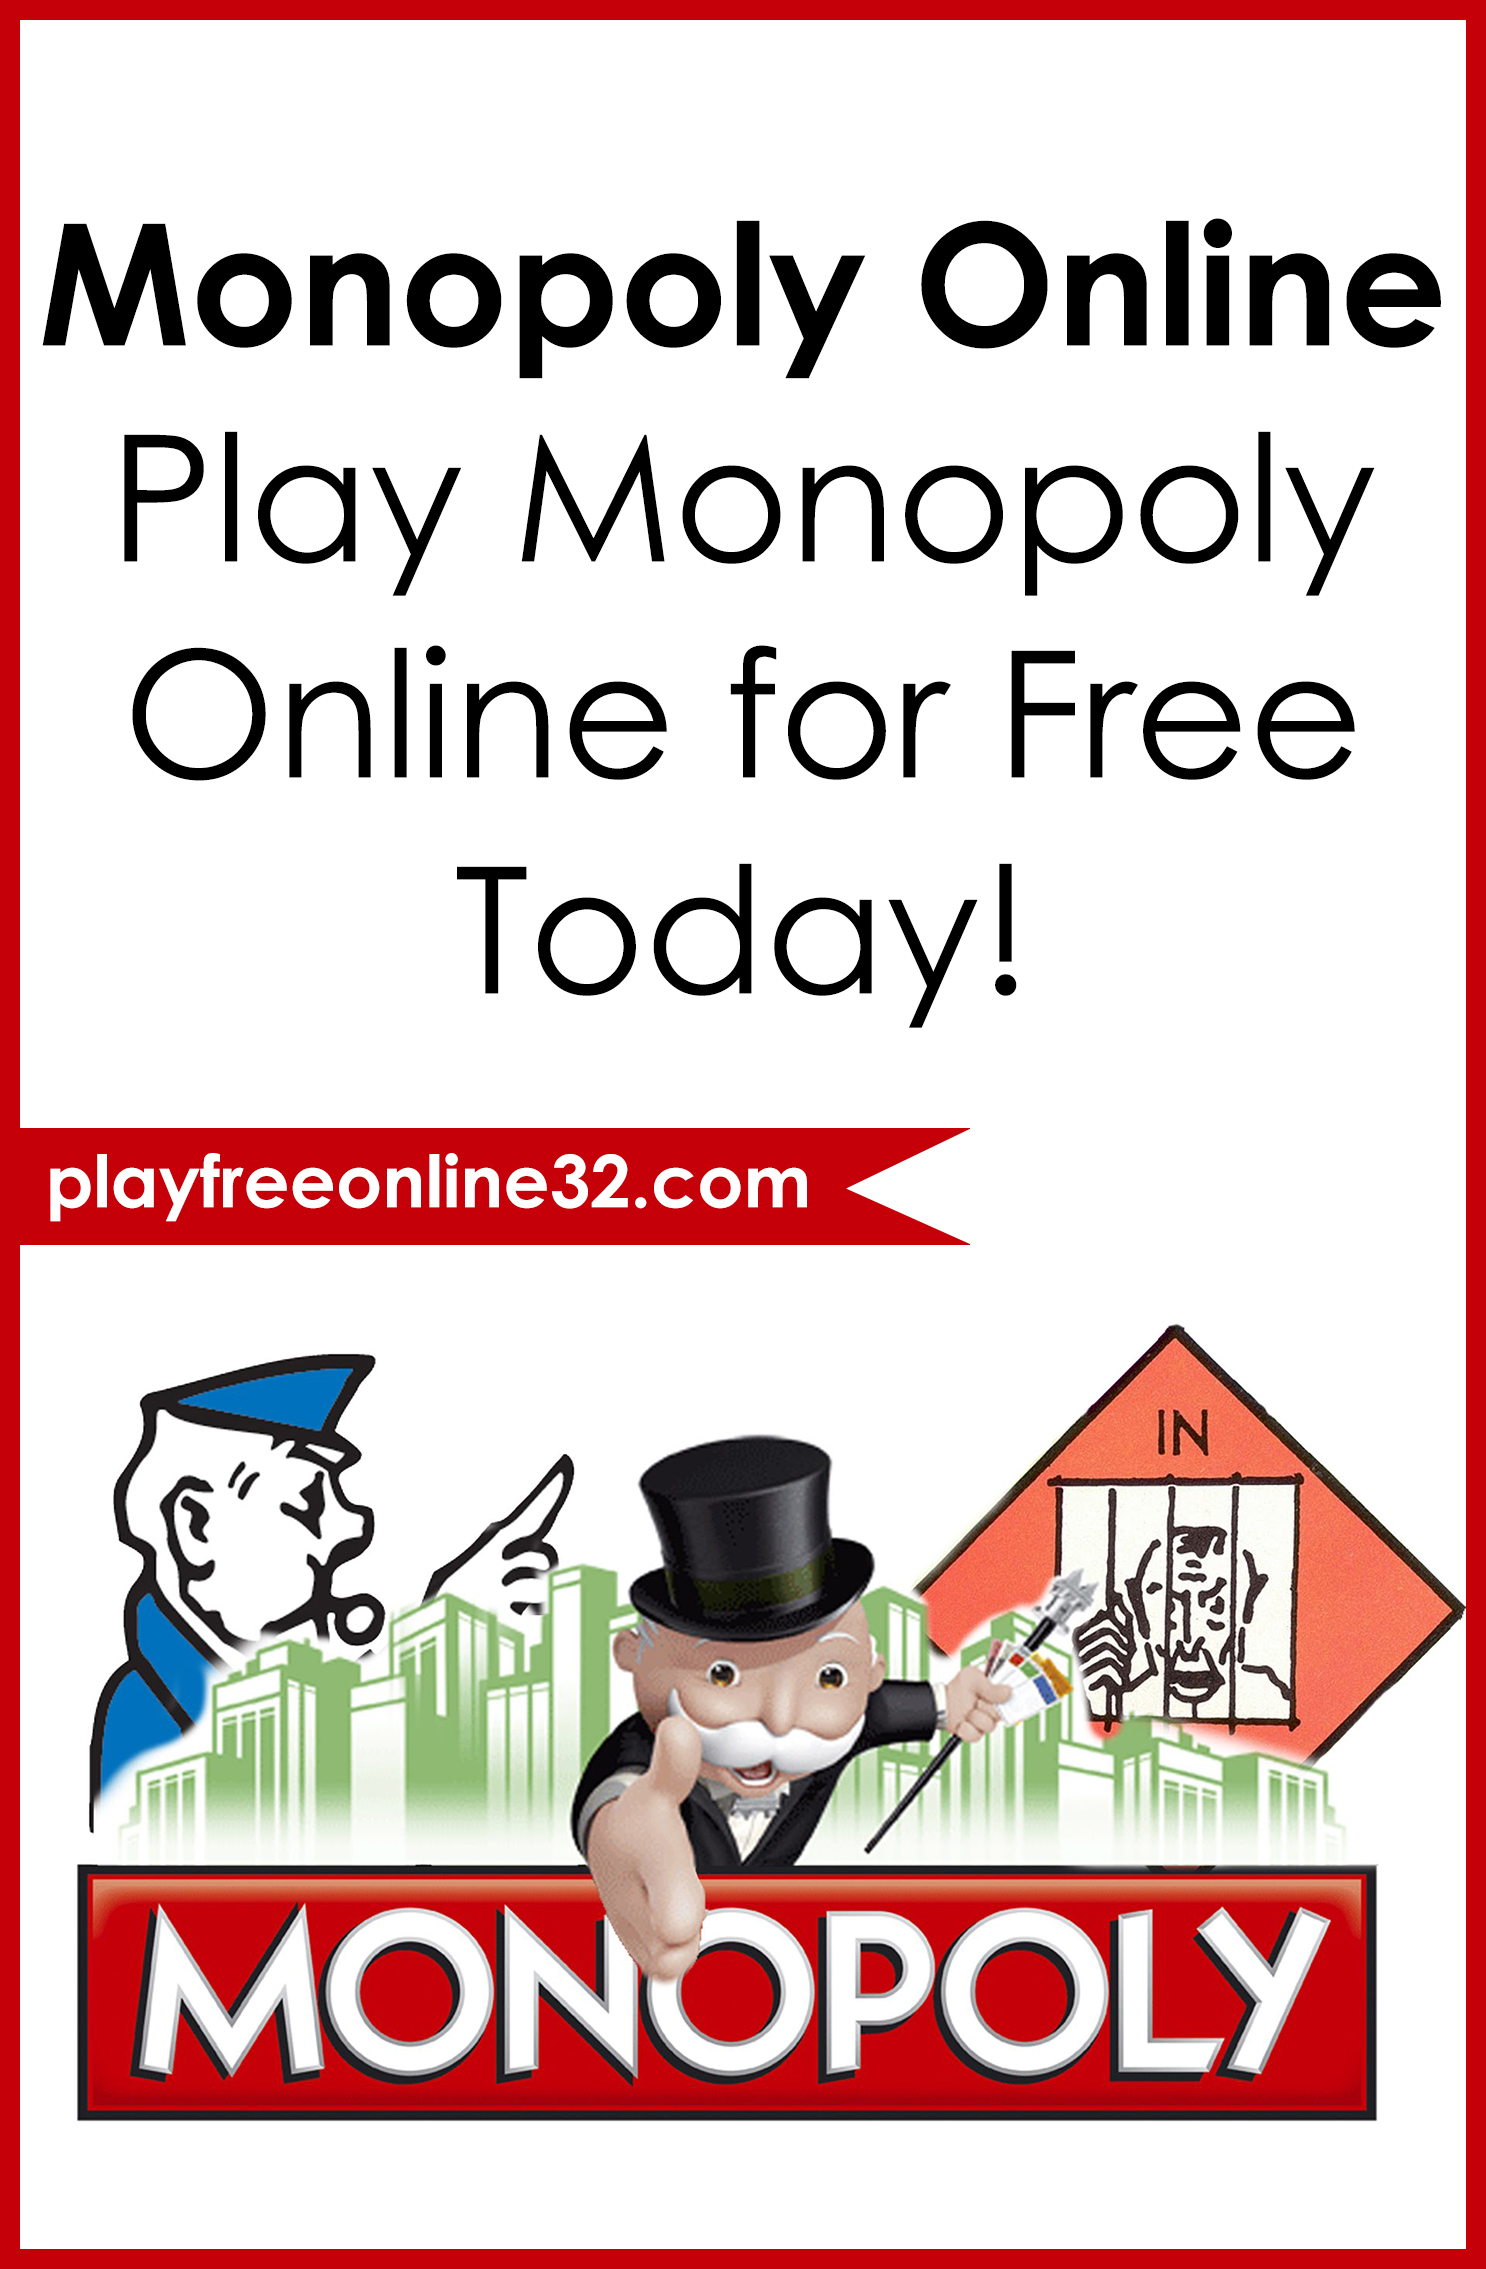 monopoly online play monopoly online for free today